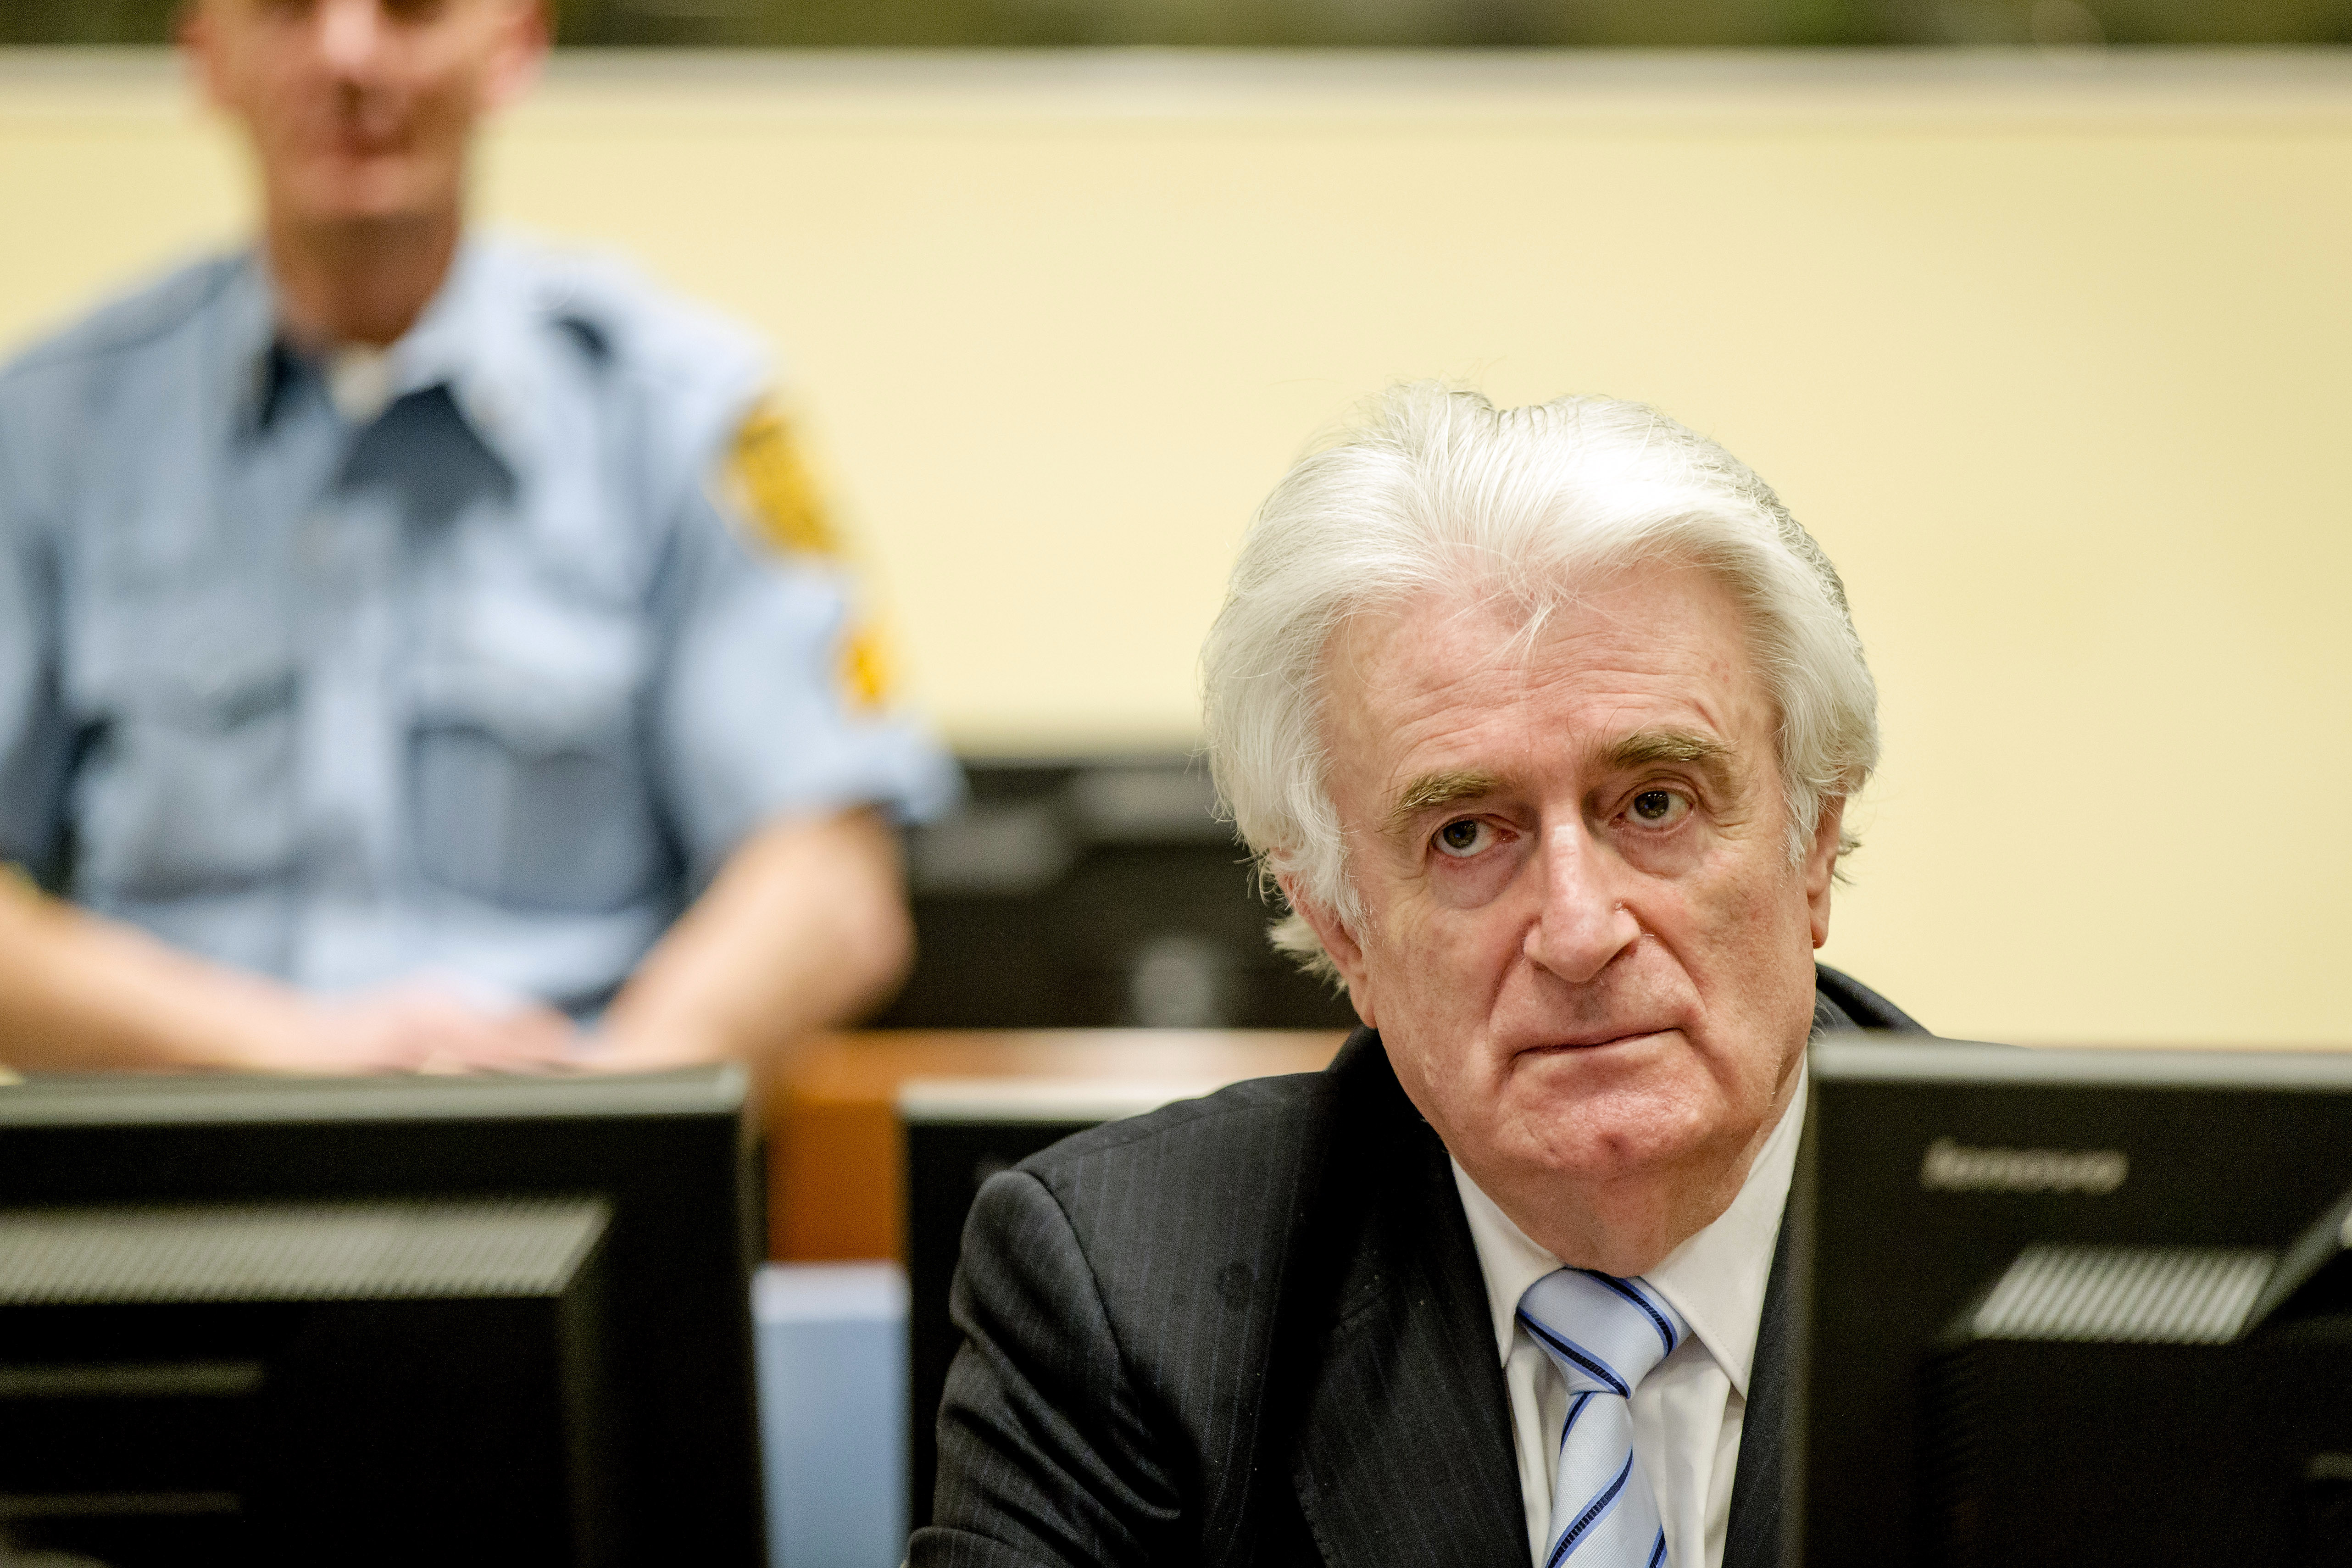 Ex-Bosnian Serb leader Radovan Karadzic sits in the court of the International Criminal Tribunal for former Yugoslavia (ICTY) in the Hague